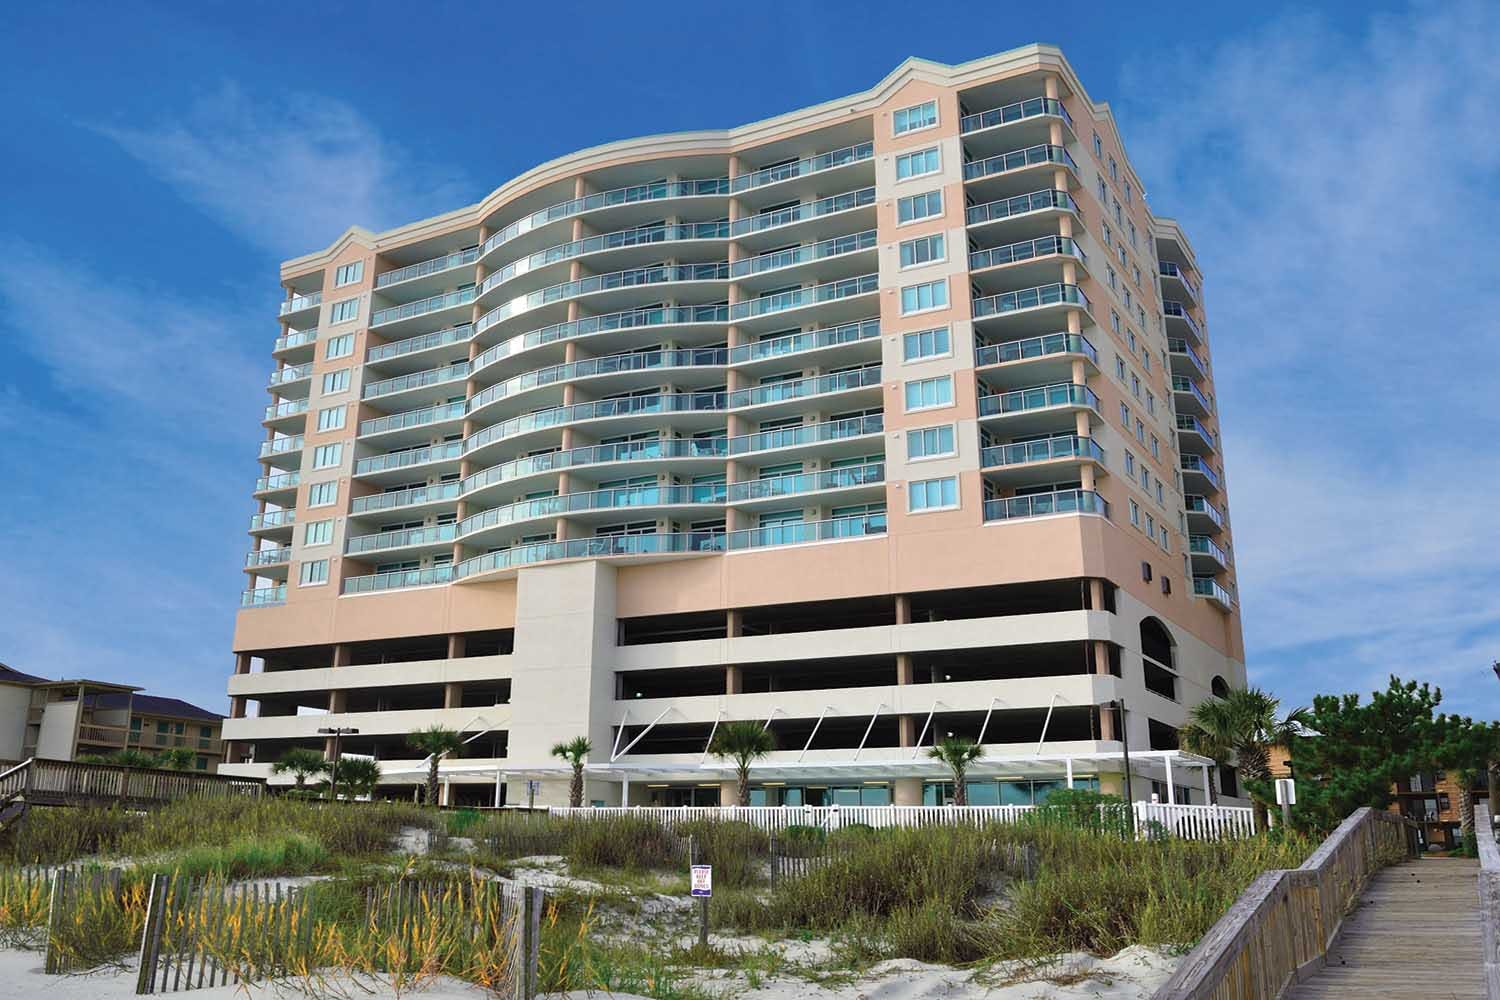 North Myrtle Beach Condo Rentals Condos In North Myrtle